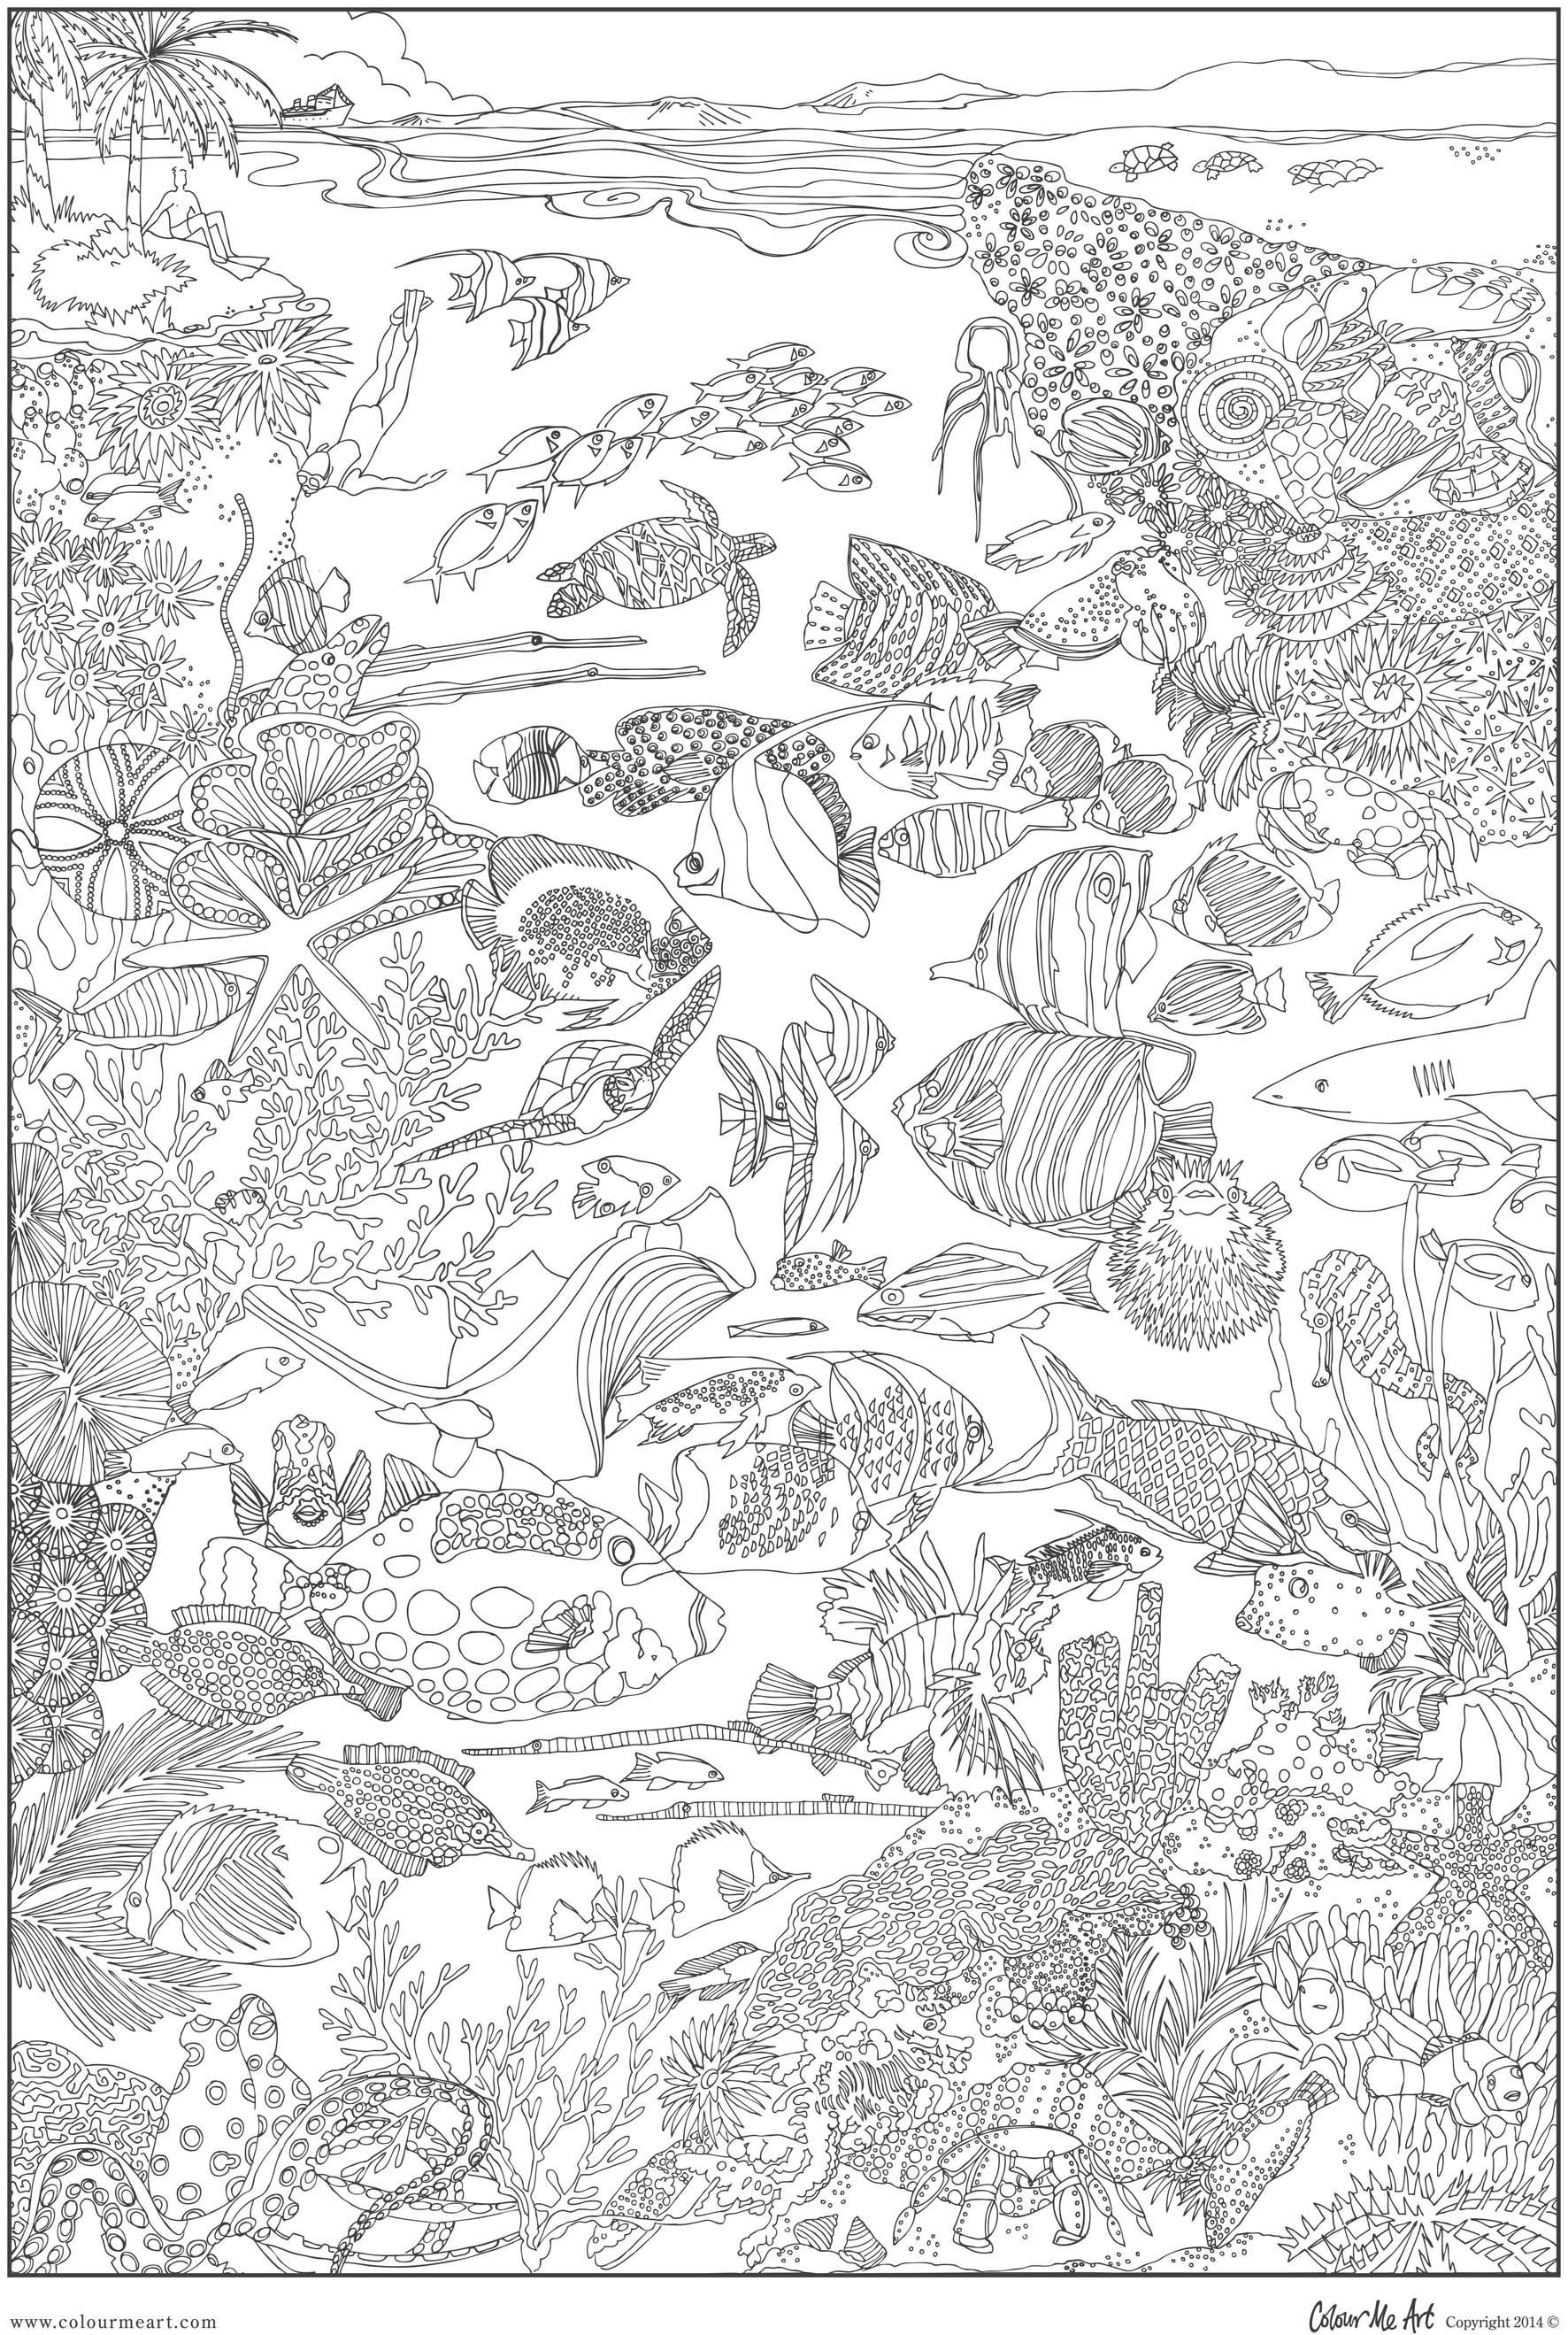 Great Barrier Reef Coloring Pages Bing Images Aquatic Life In Coral Reef Coloring Pages Free Energyeffic Ocean Coloring Pages Coloring Posters Coloring Pages